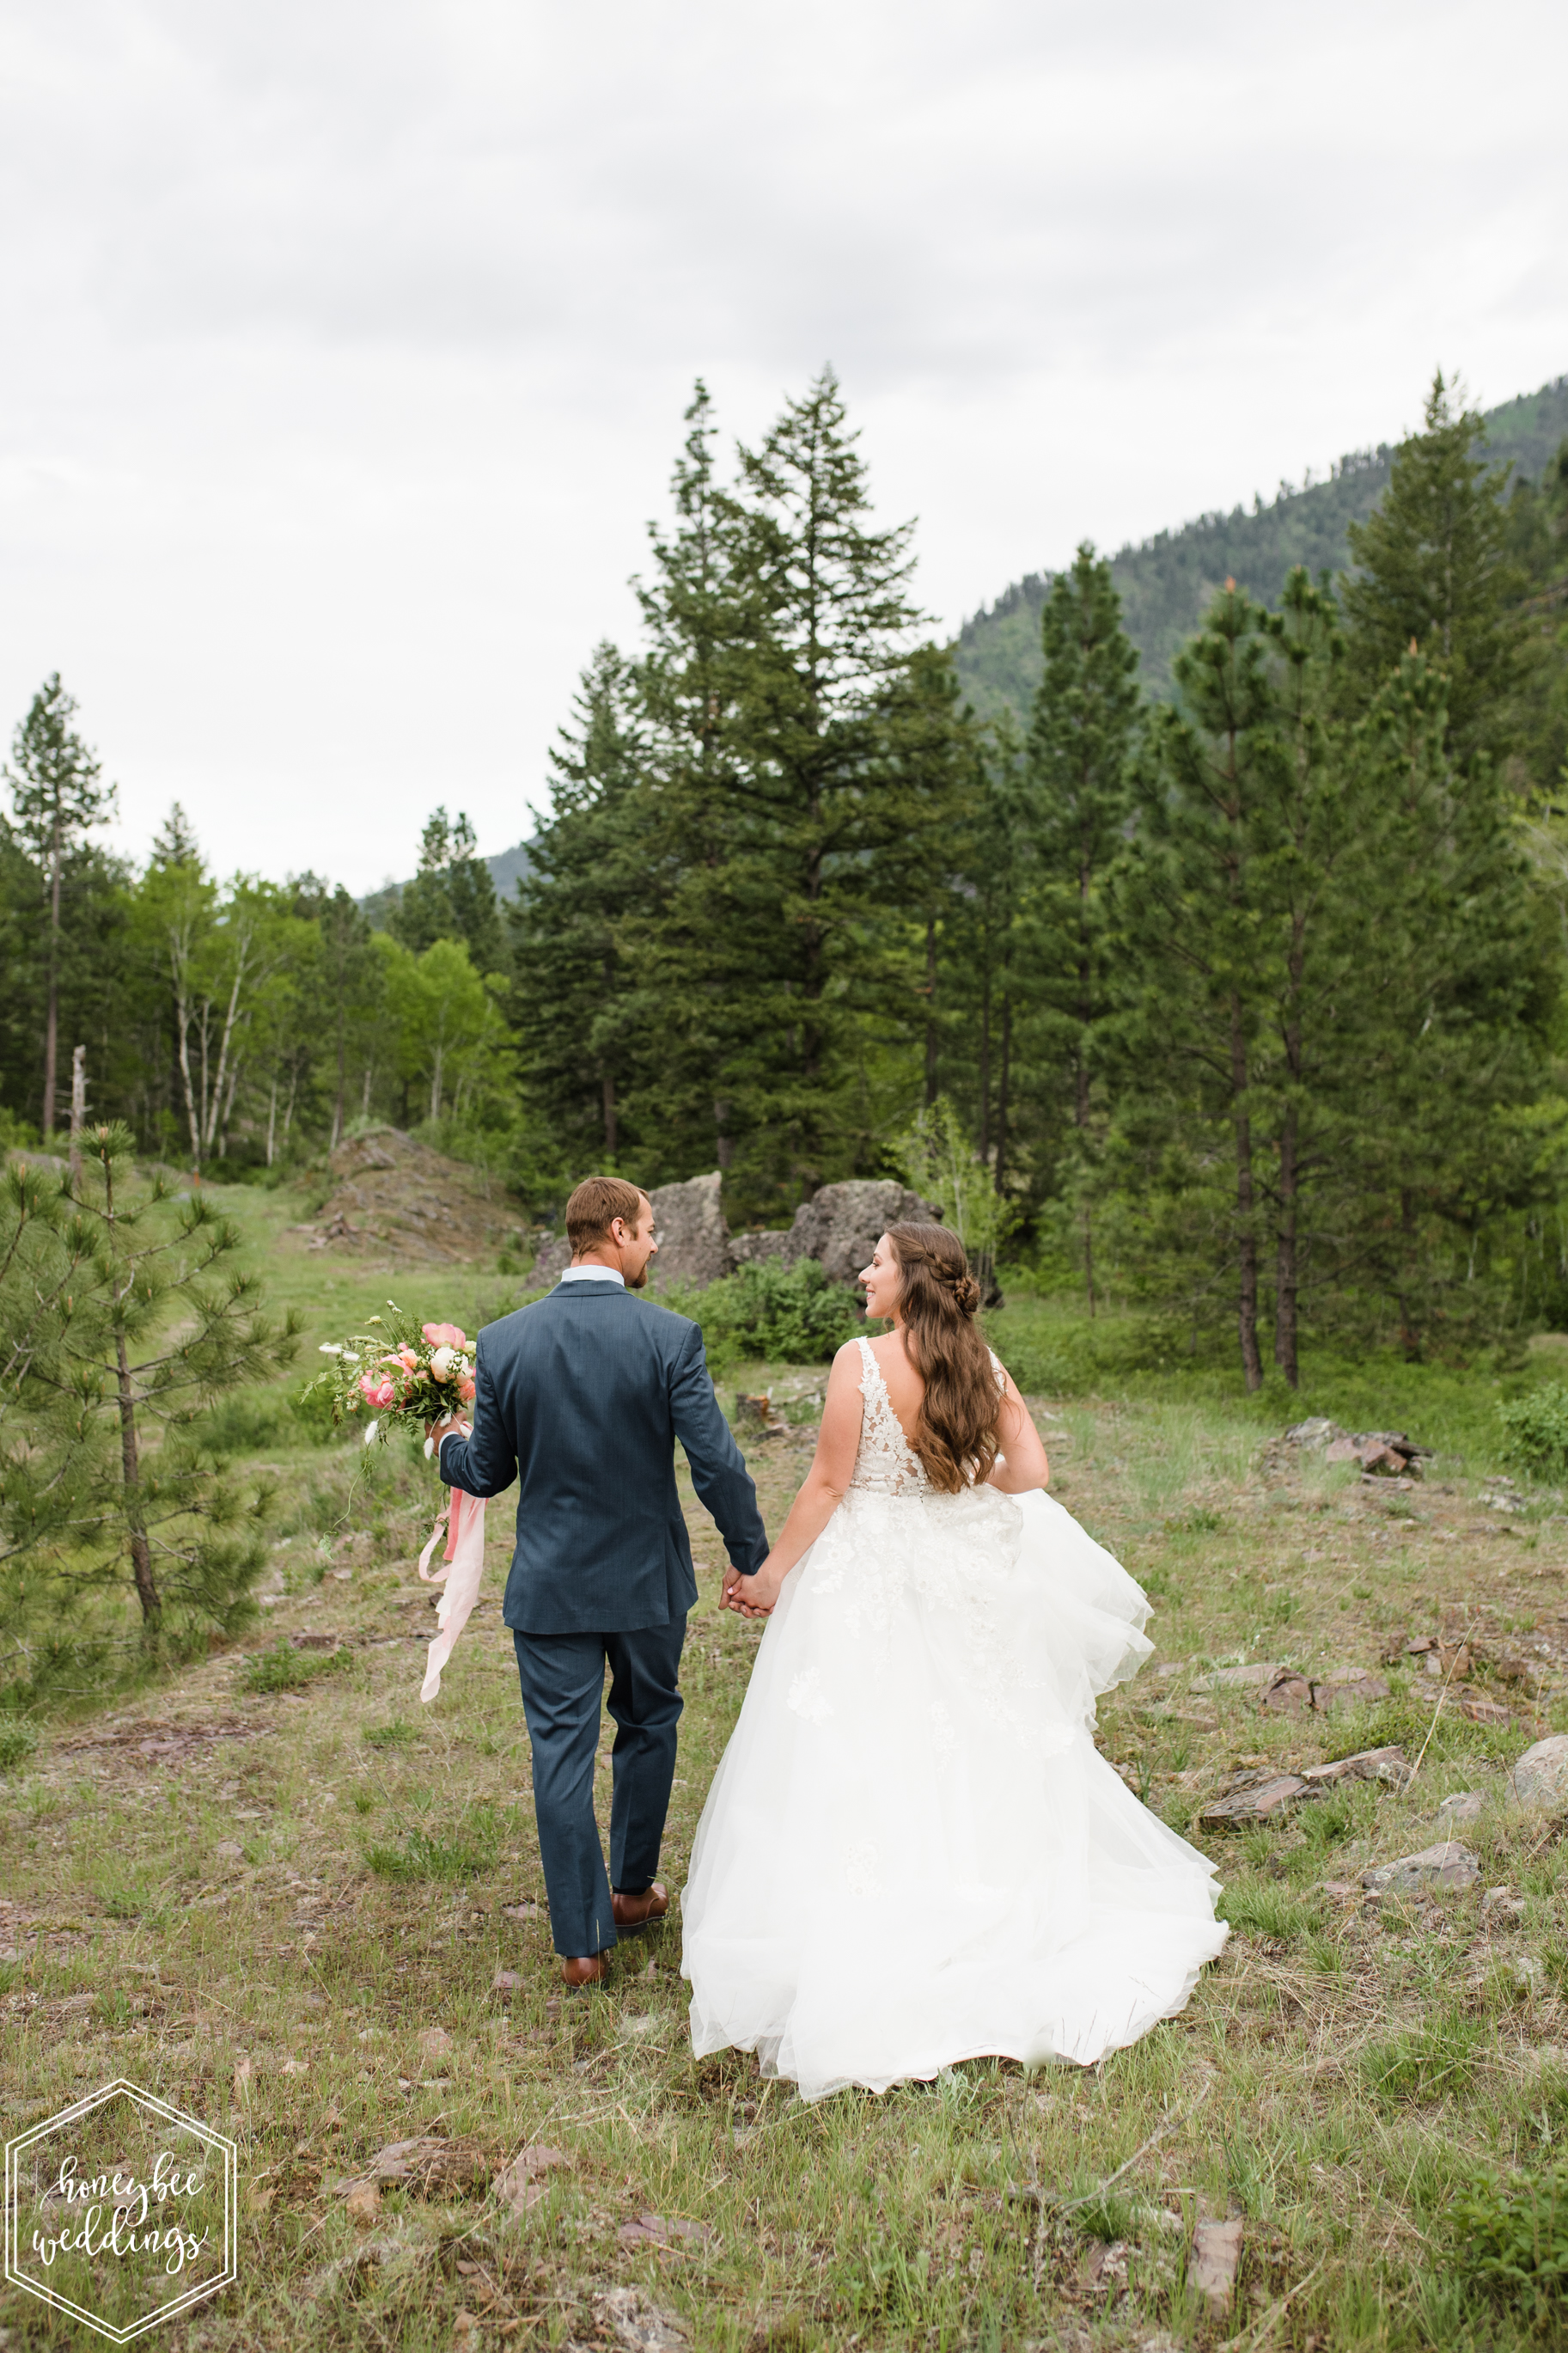 160Coral Mountain Wedding at White Raven_Honeybee Weddings_May 23, 2019-479.jpg